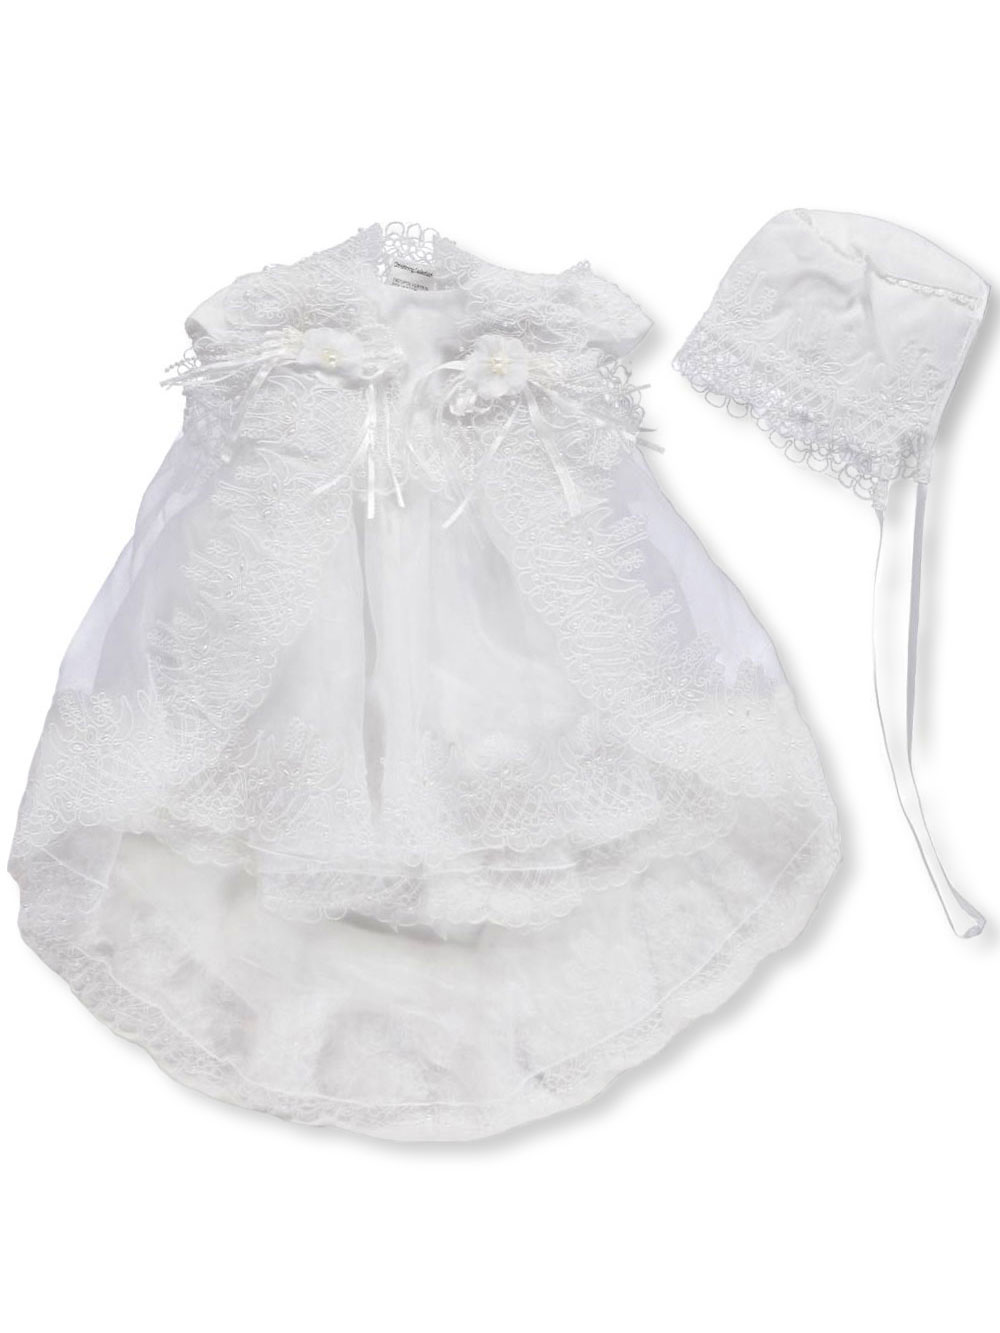 Chic Baby Baptism and Christening